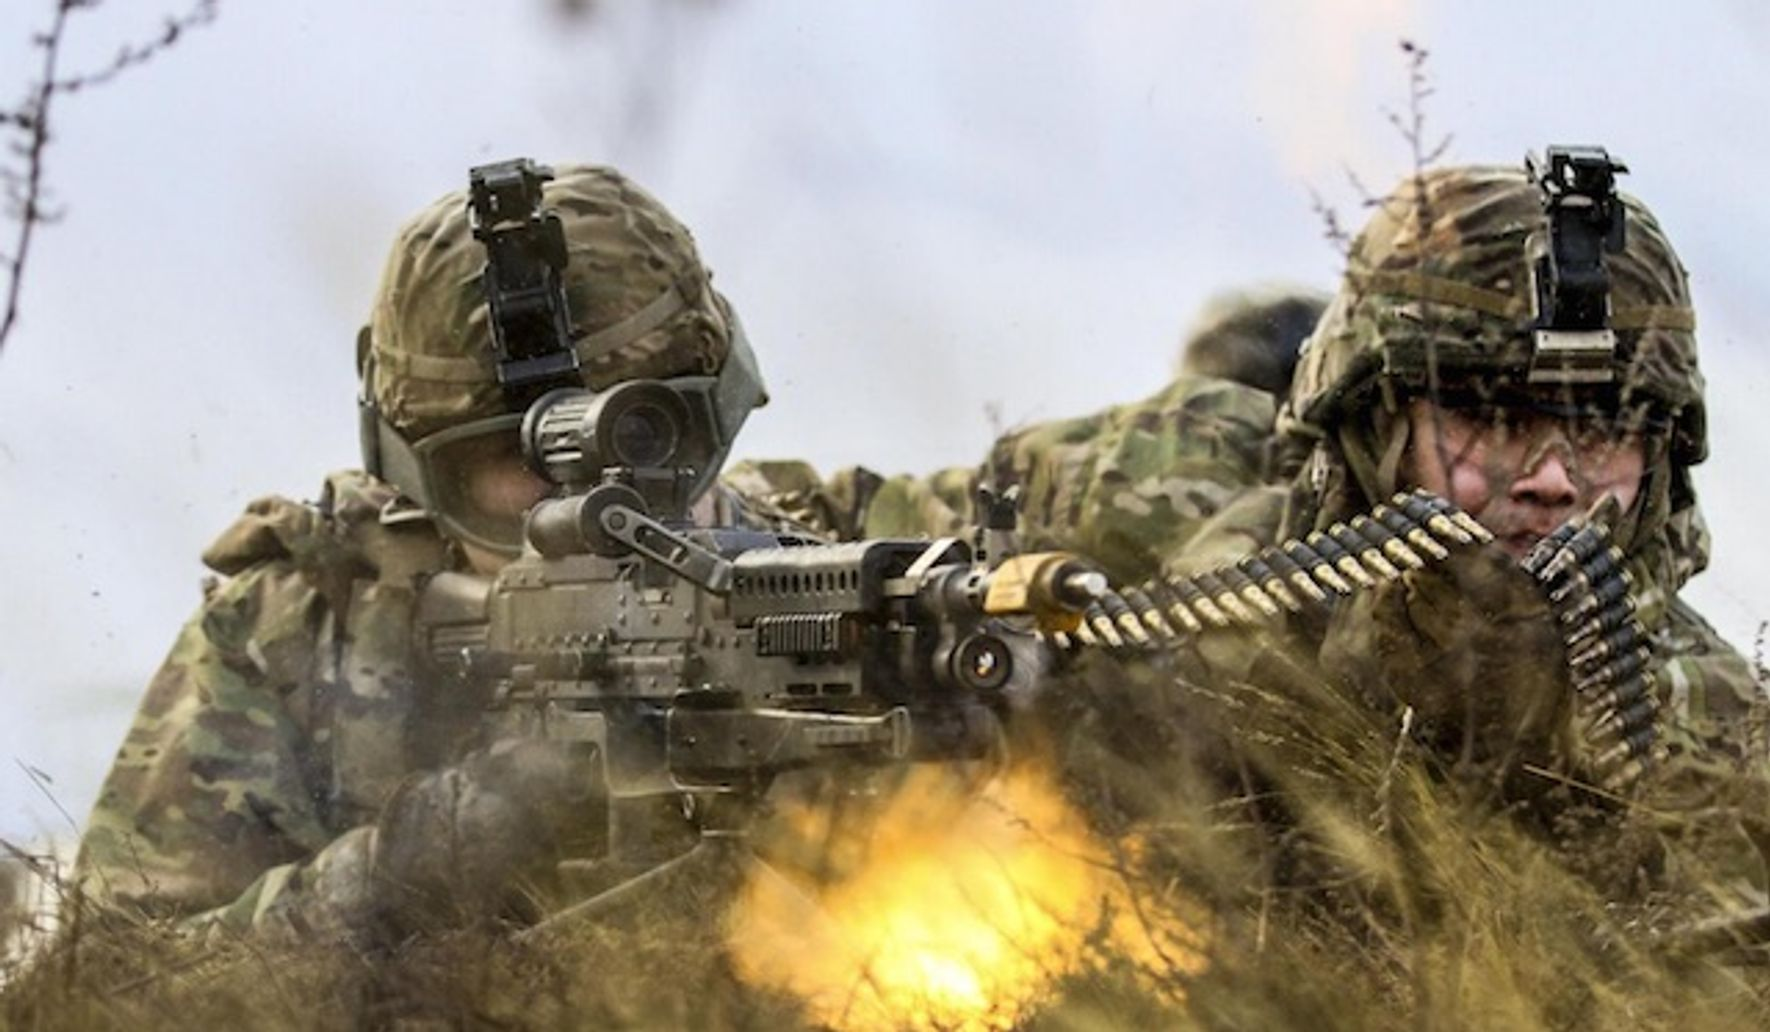 Image of article '20,000 U.S. troops deploying to Europe in biggest show of force since Cold War'